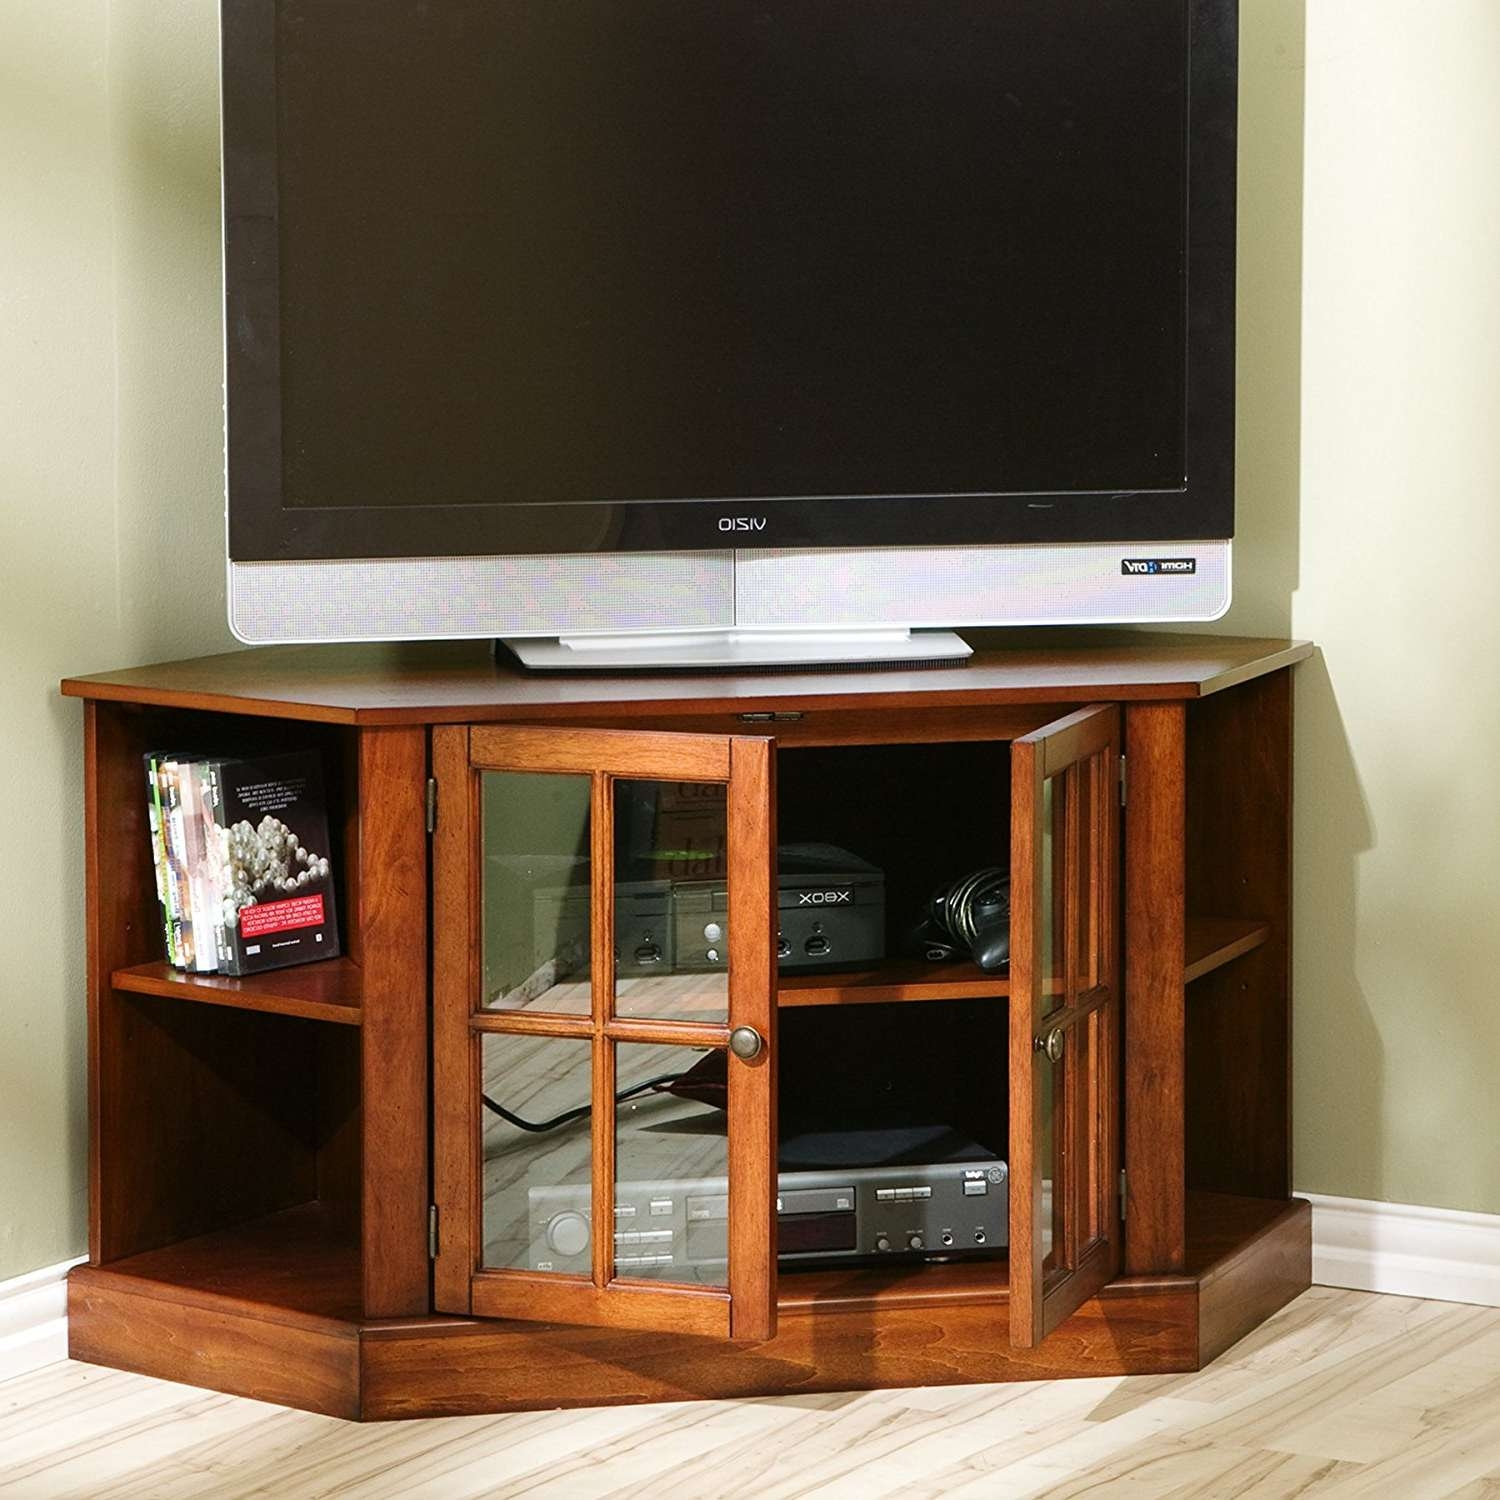 Tv : 24 Inch Corner Tv Stands Noticeable 24 Inch Corner Tv Stands For 24 Inch Corner Tv Stands (View 7 of 15)